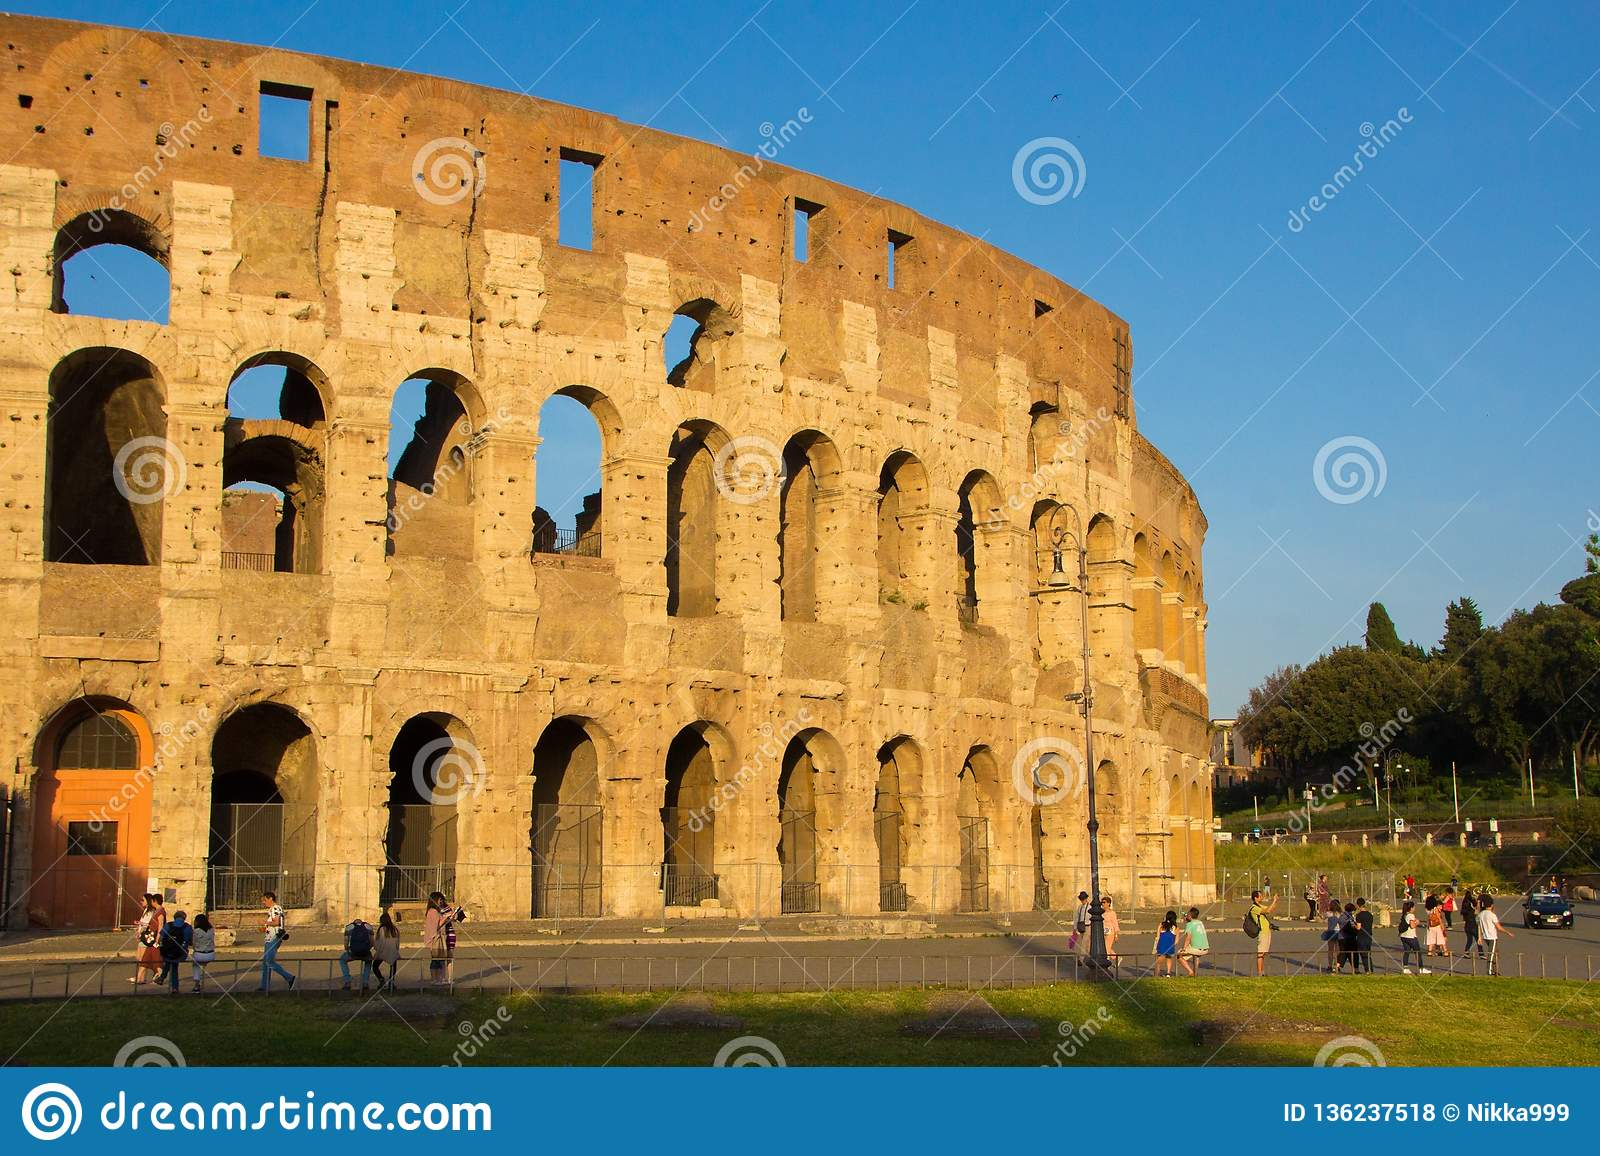 Rome, Italy - May 31, 2018: Roman Colosseum at sunset. Tourists walk near the Colosseum, Golden evening hour. Not restored old